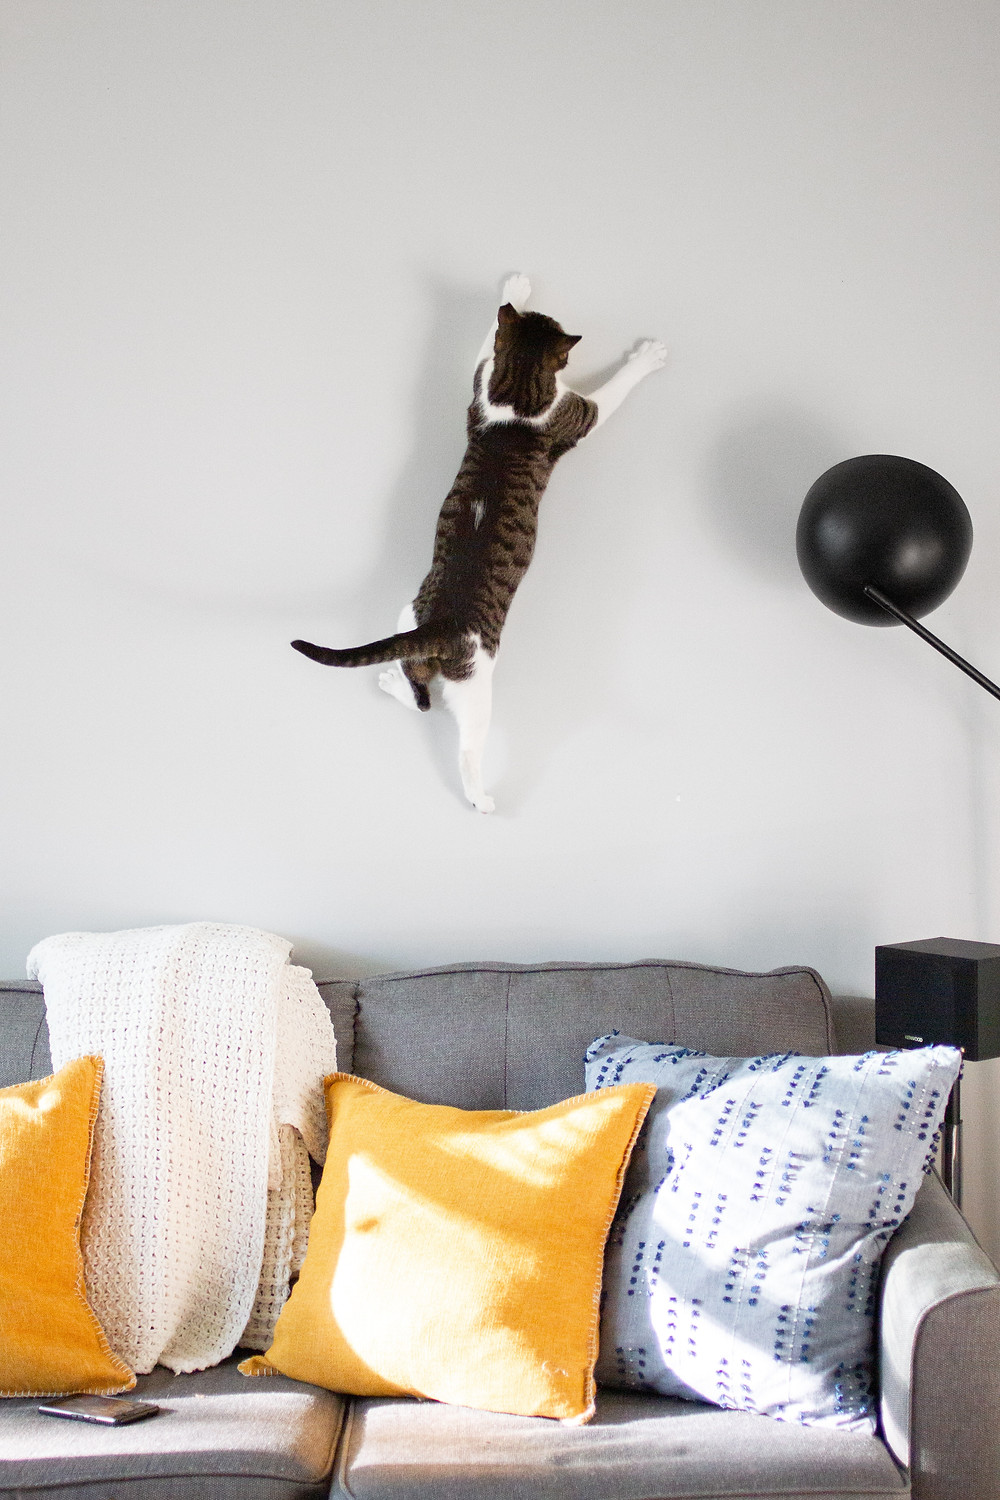 A cat has leaped from the top of a grey couch and is frozen mid leap halfway up the wall. The couch is grey with sun shining on the yellow and blue pillows. The area is neat and clean.